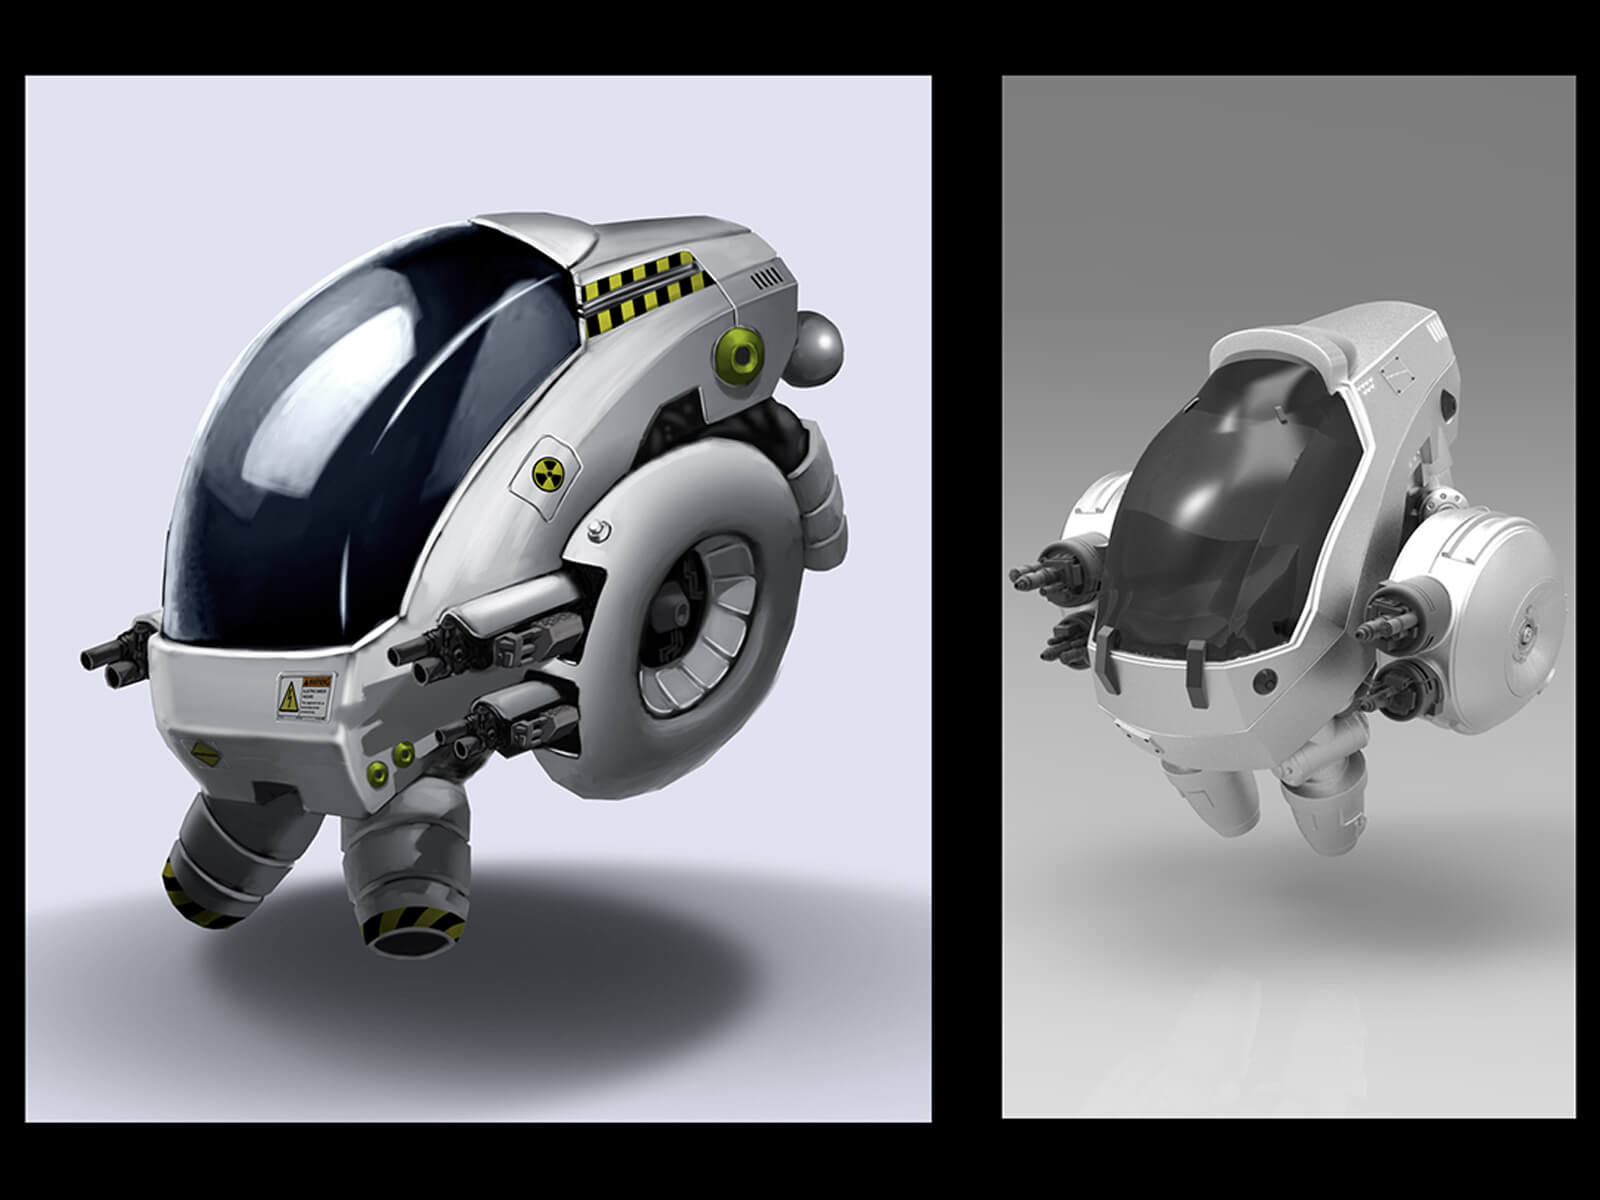 computer-generated 3D model of a robot vehicle that is reminiscent of a turtle